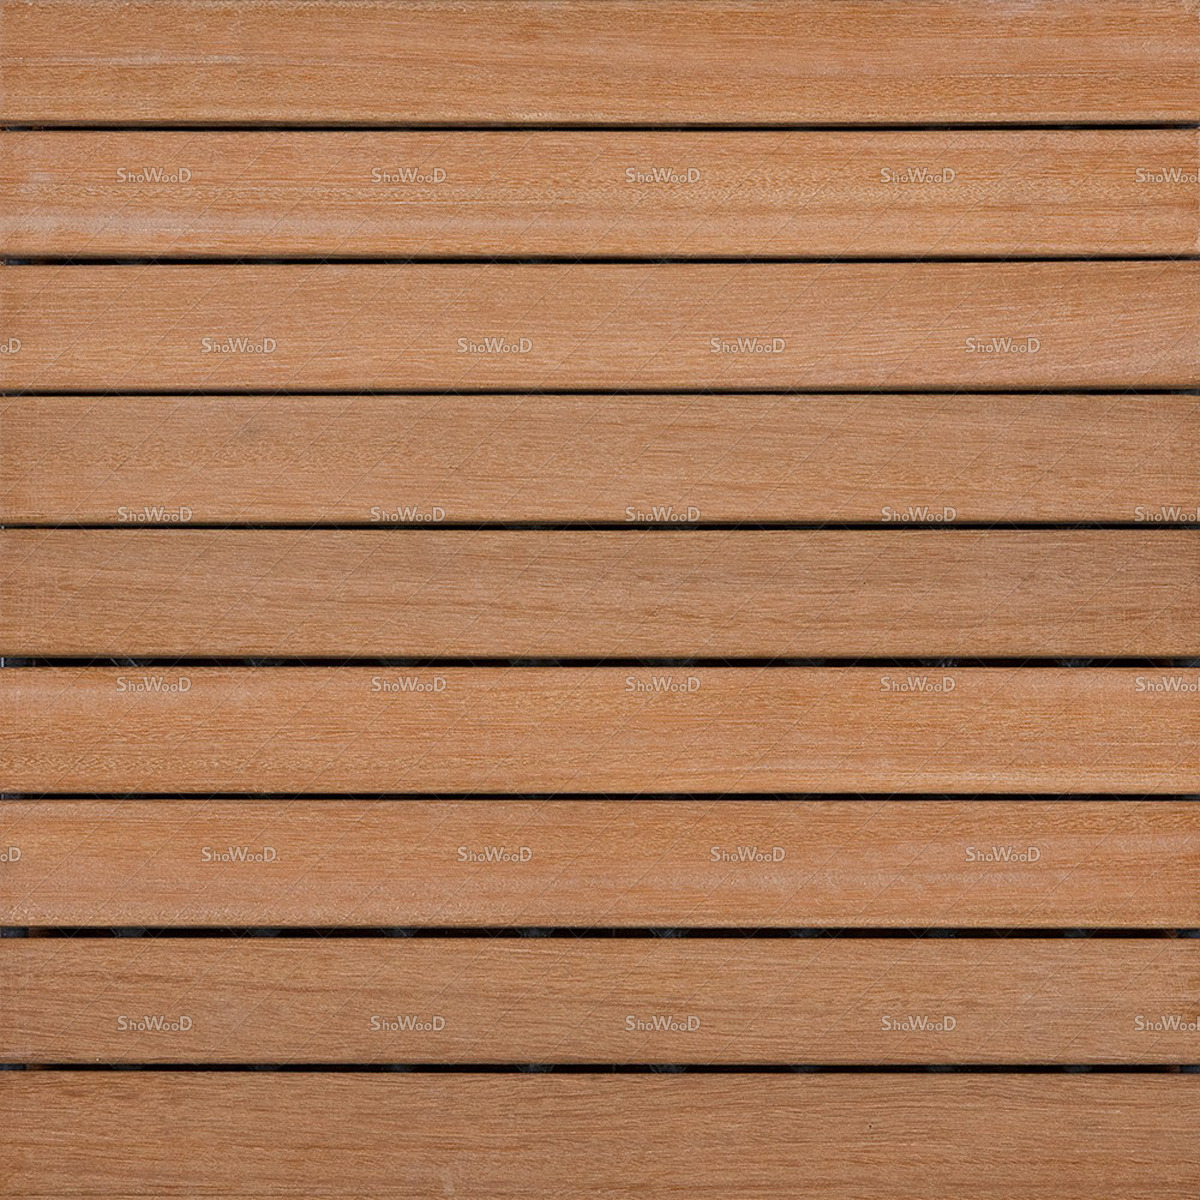 Deck wood flooring | Deck design and Ideas